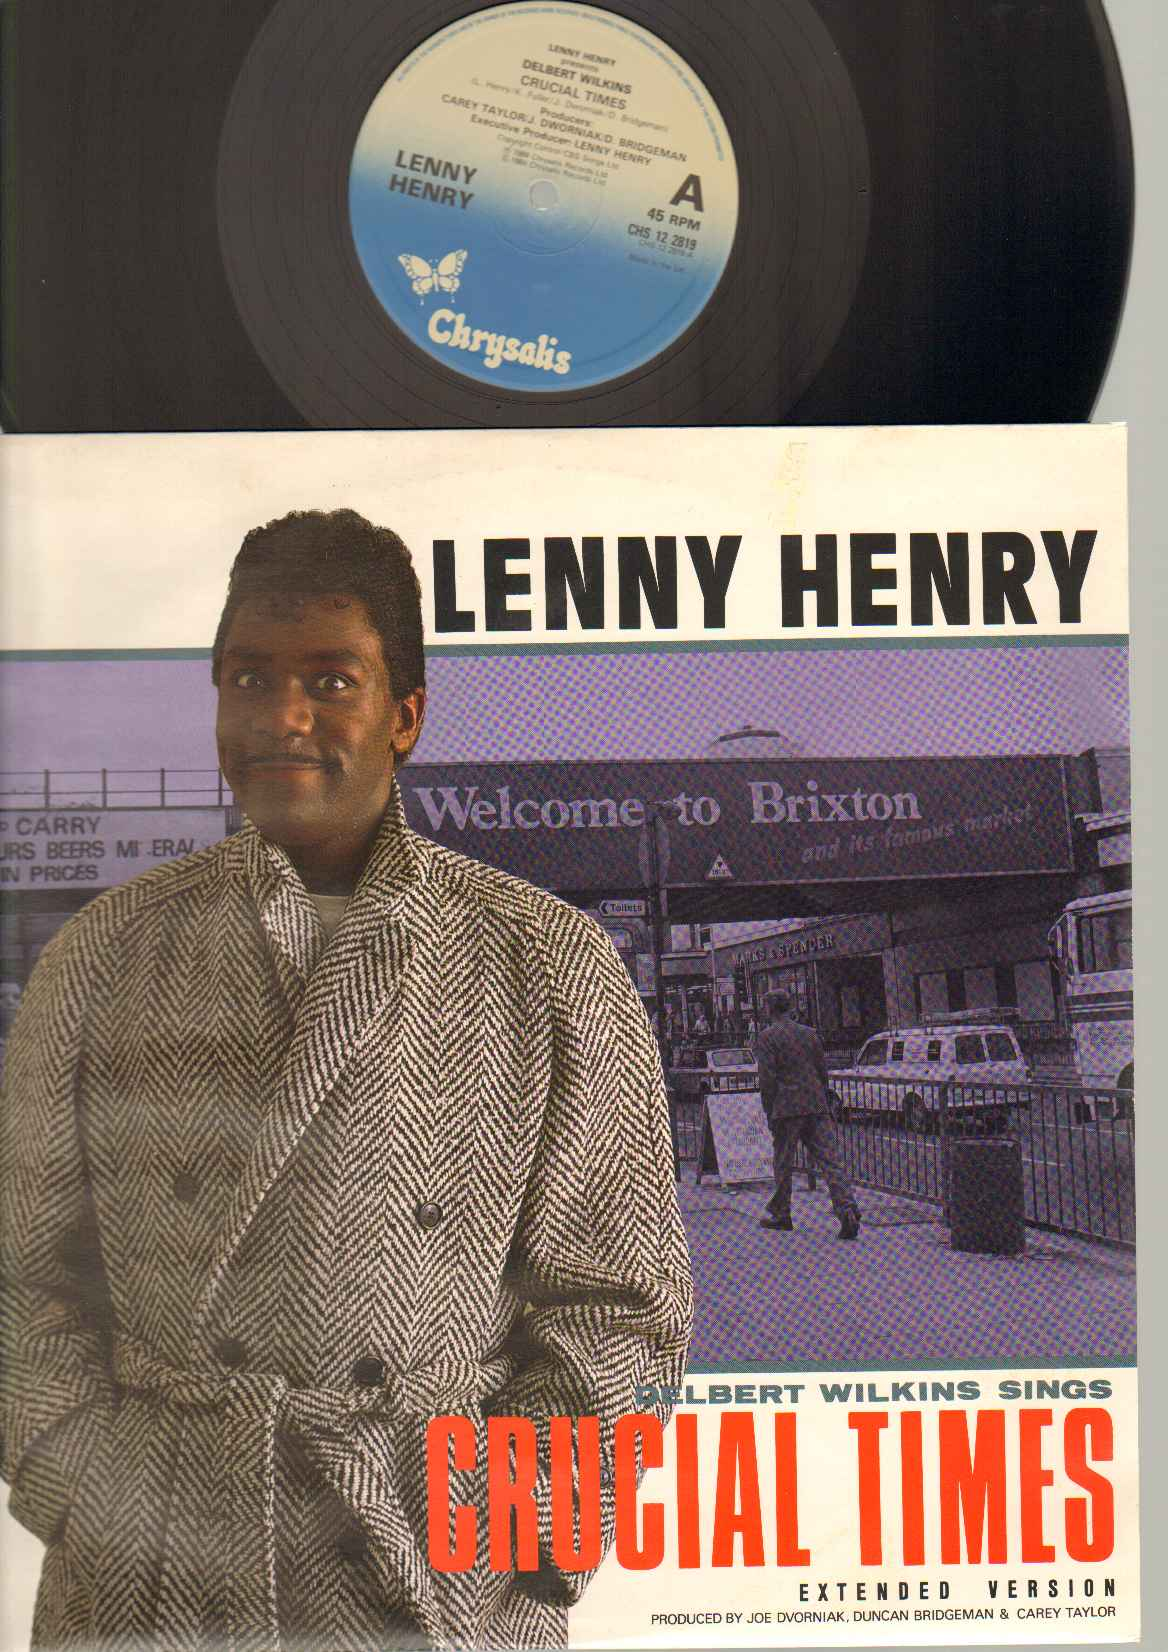 LENNY HENRY PRESENTS DELBERT WATKINS - CRUCIAL TIMES - 12 inch 45 rpm